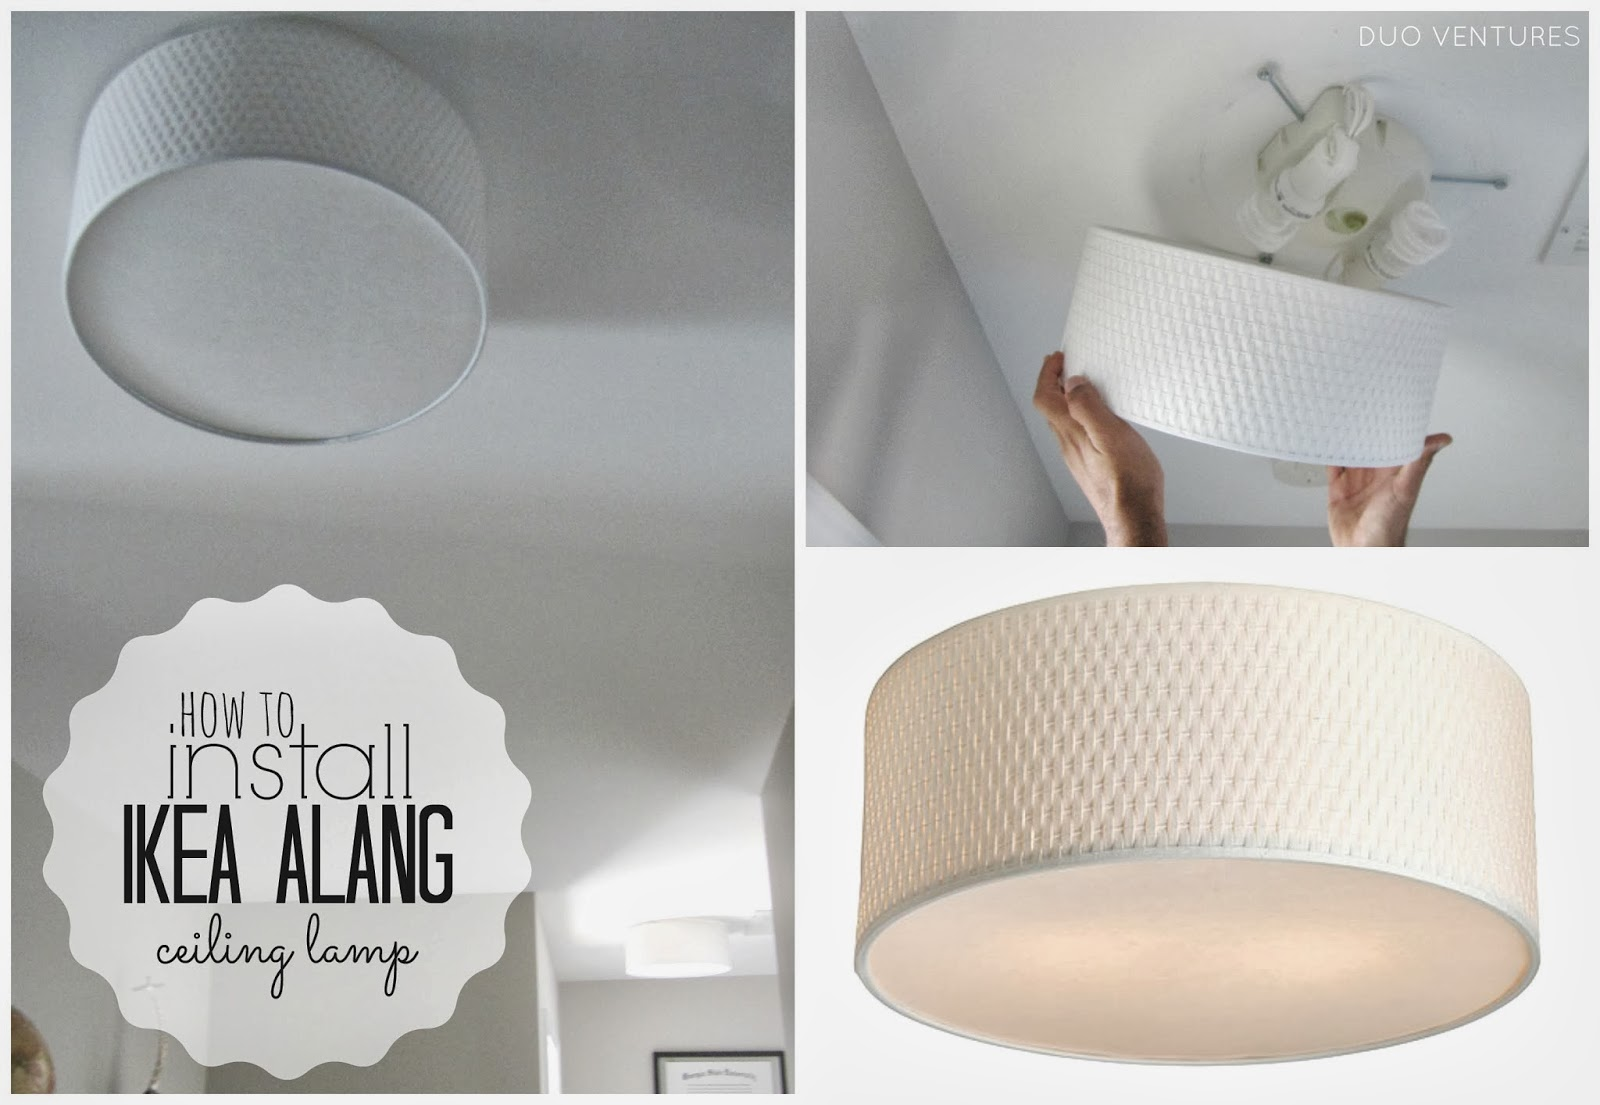 Bathroom Ceiling Lights Bulbs tips on how to buy the right ceiling light bulb shade | warisan